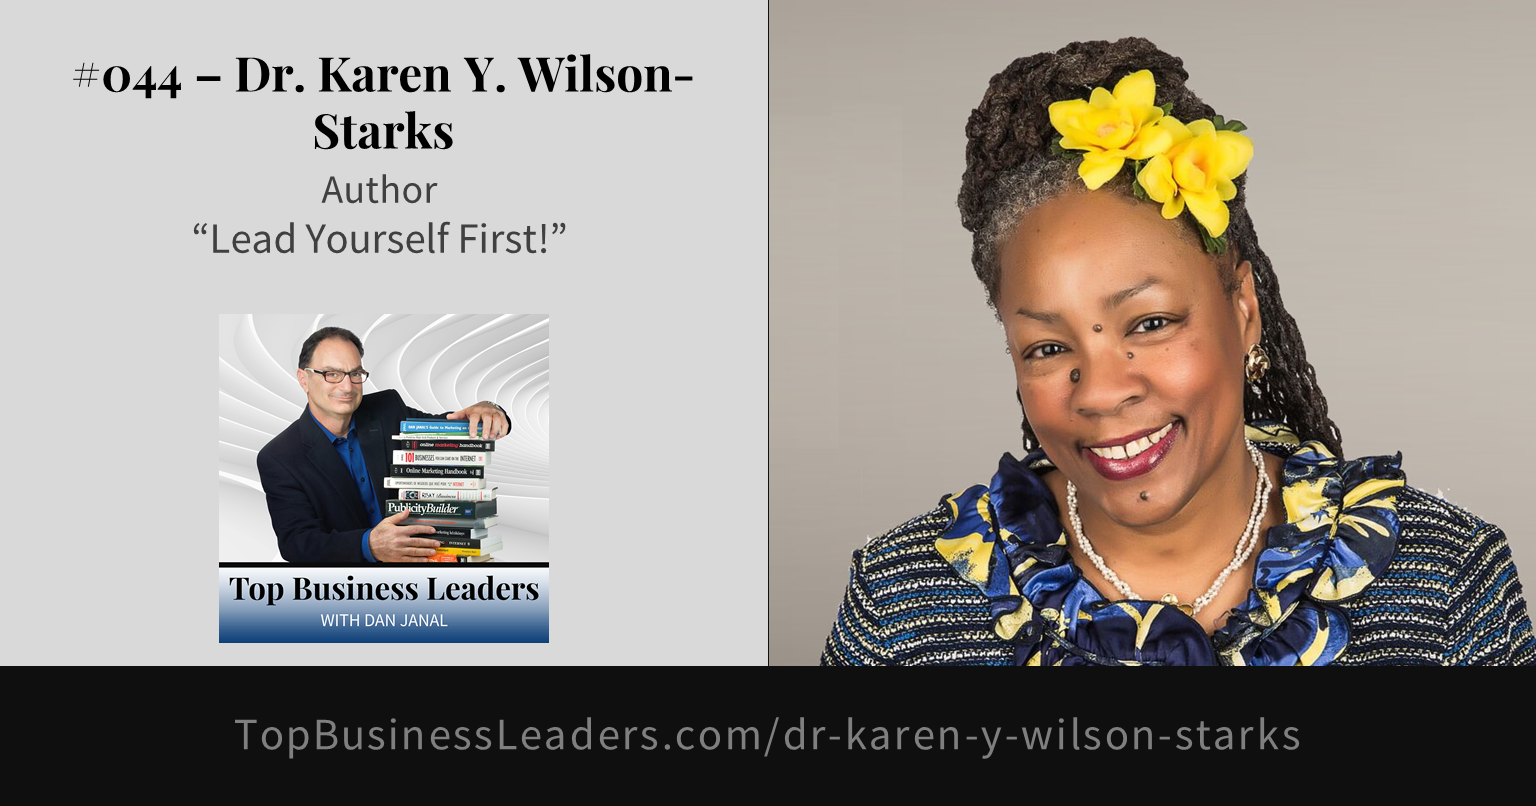 dr-karen-y-wilson-starks-author-lead-yourself-first